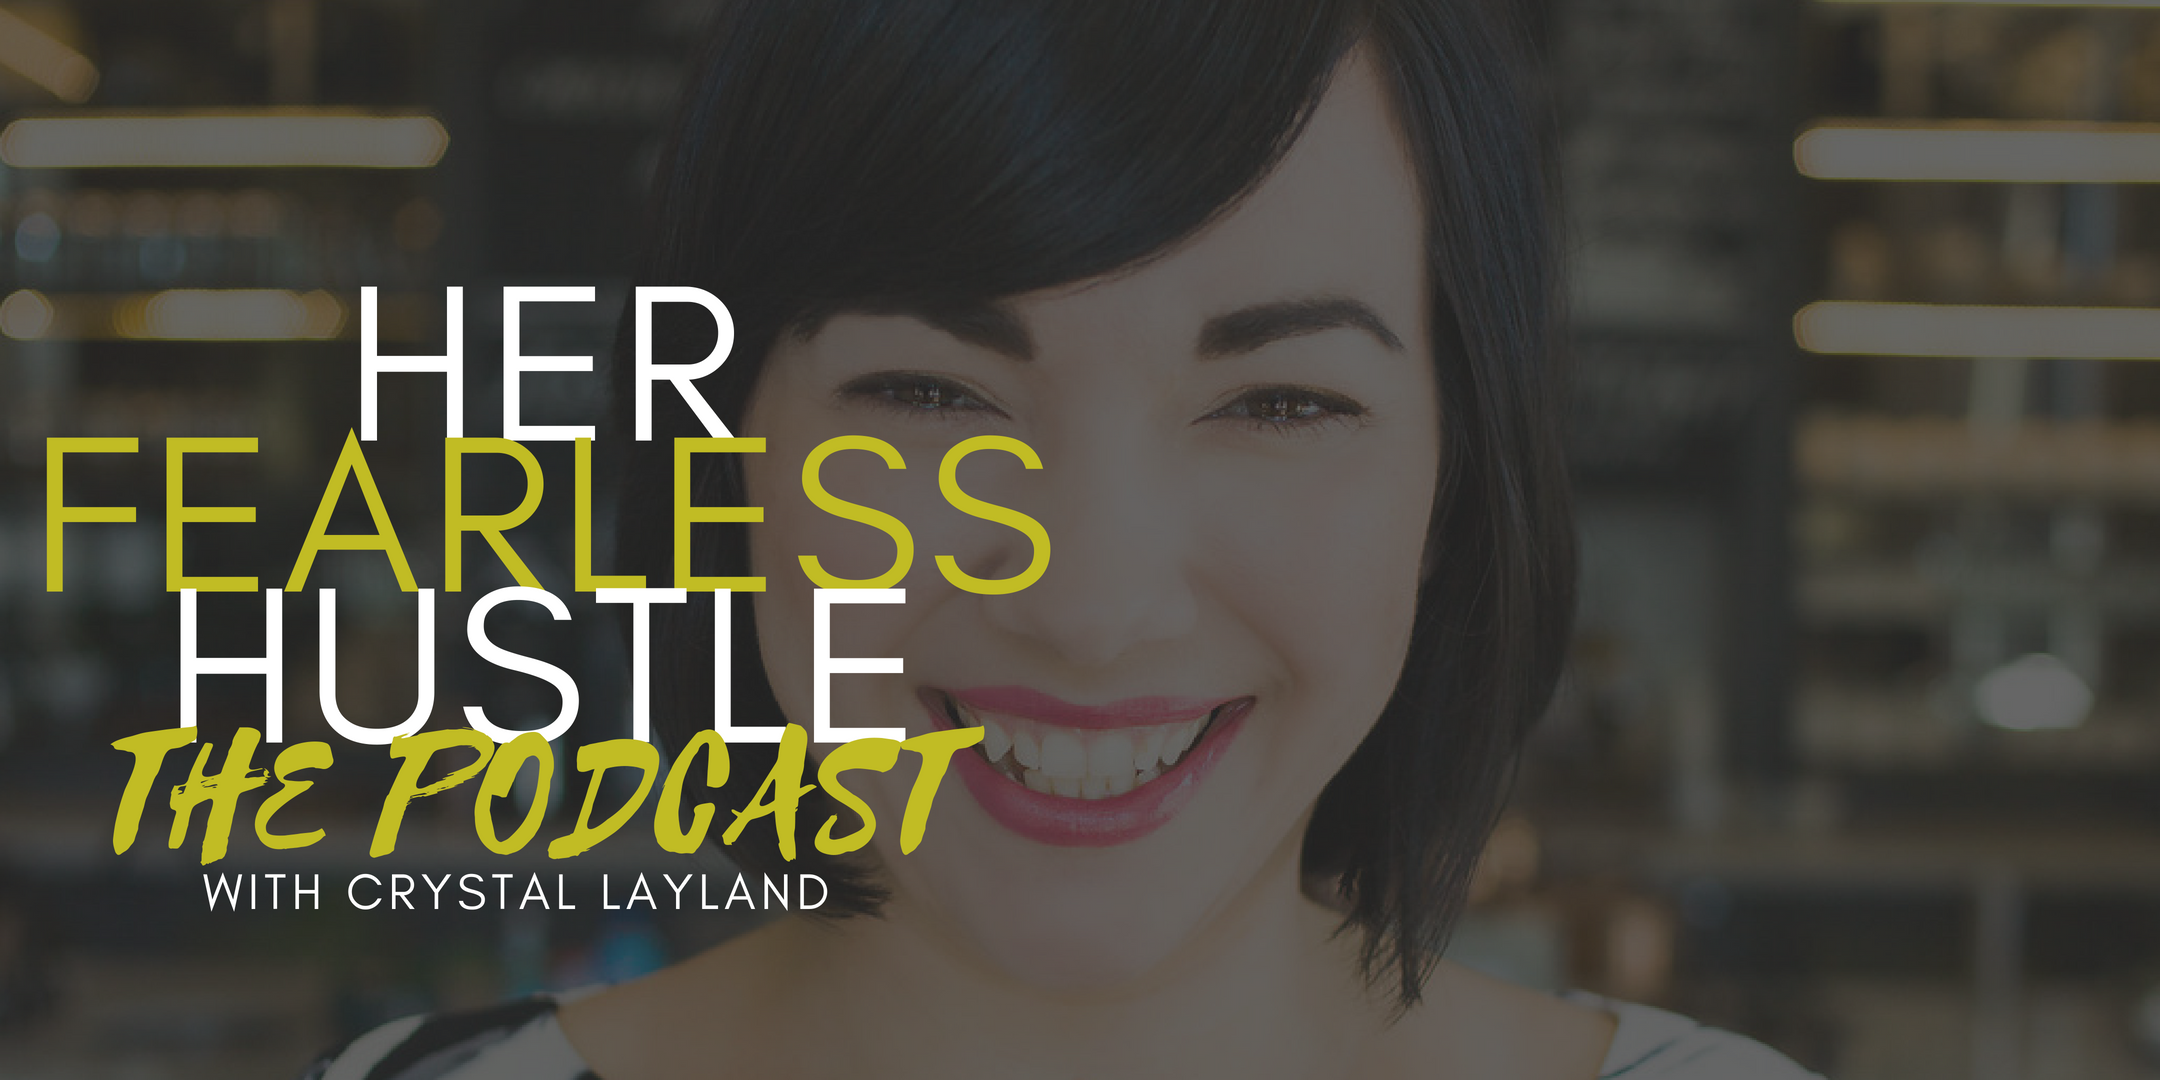 Serena is recording for an episode on Her Fearless Hustle, with Crystal Layland! Stay tuned for more information!